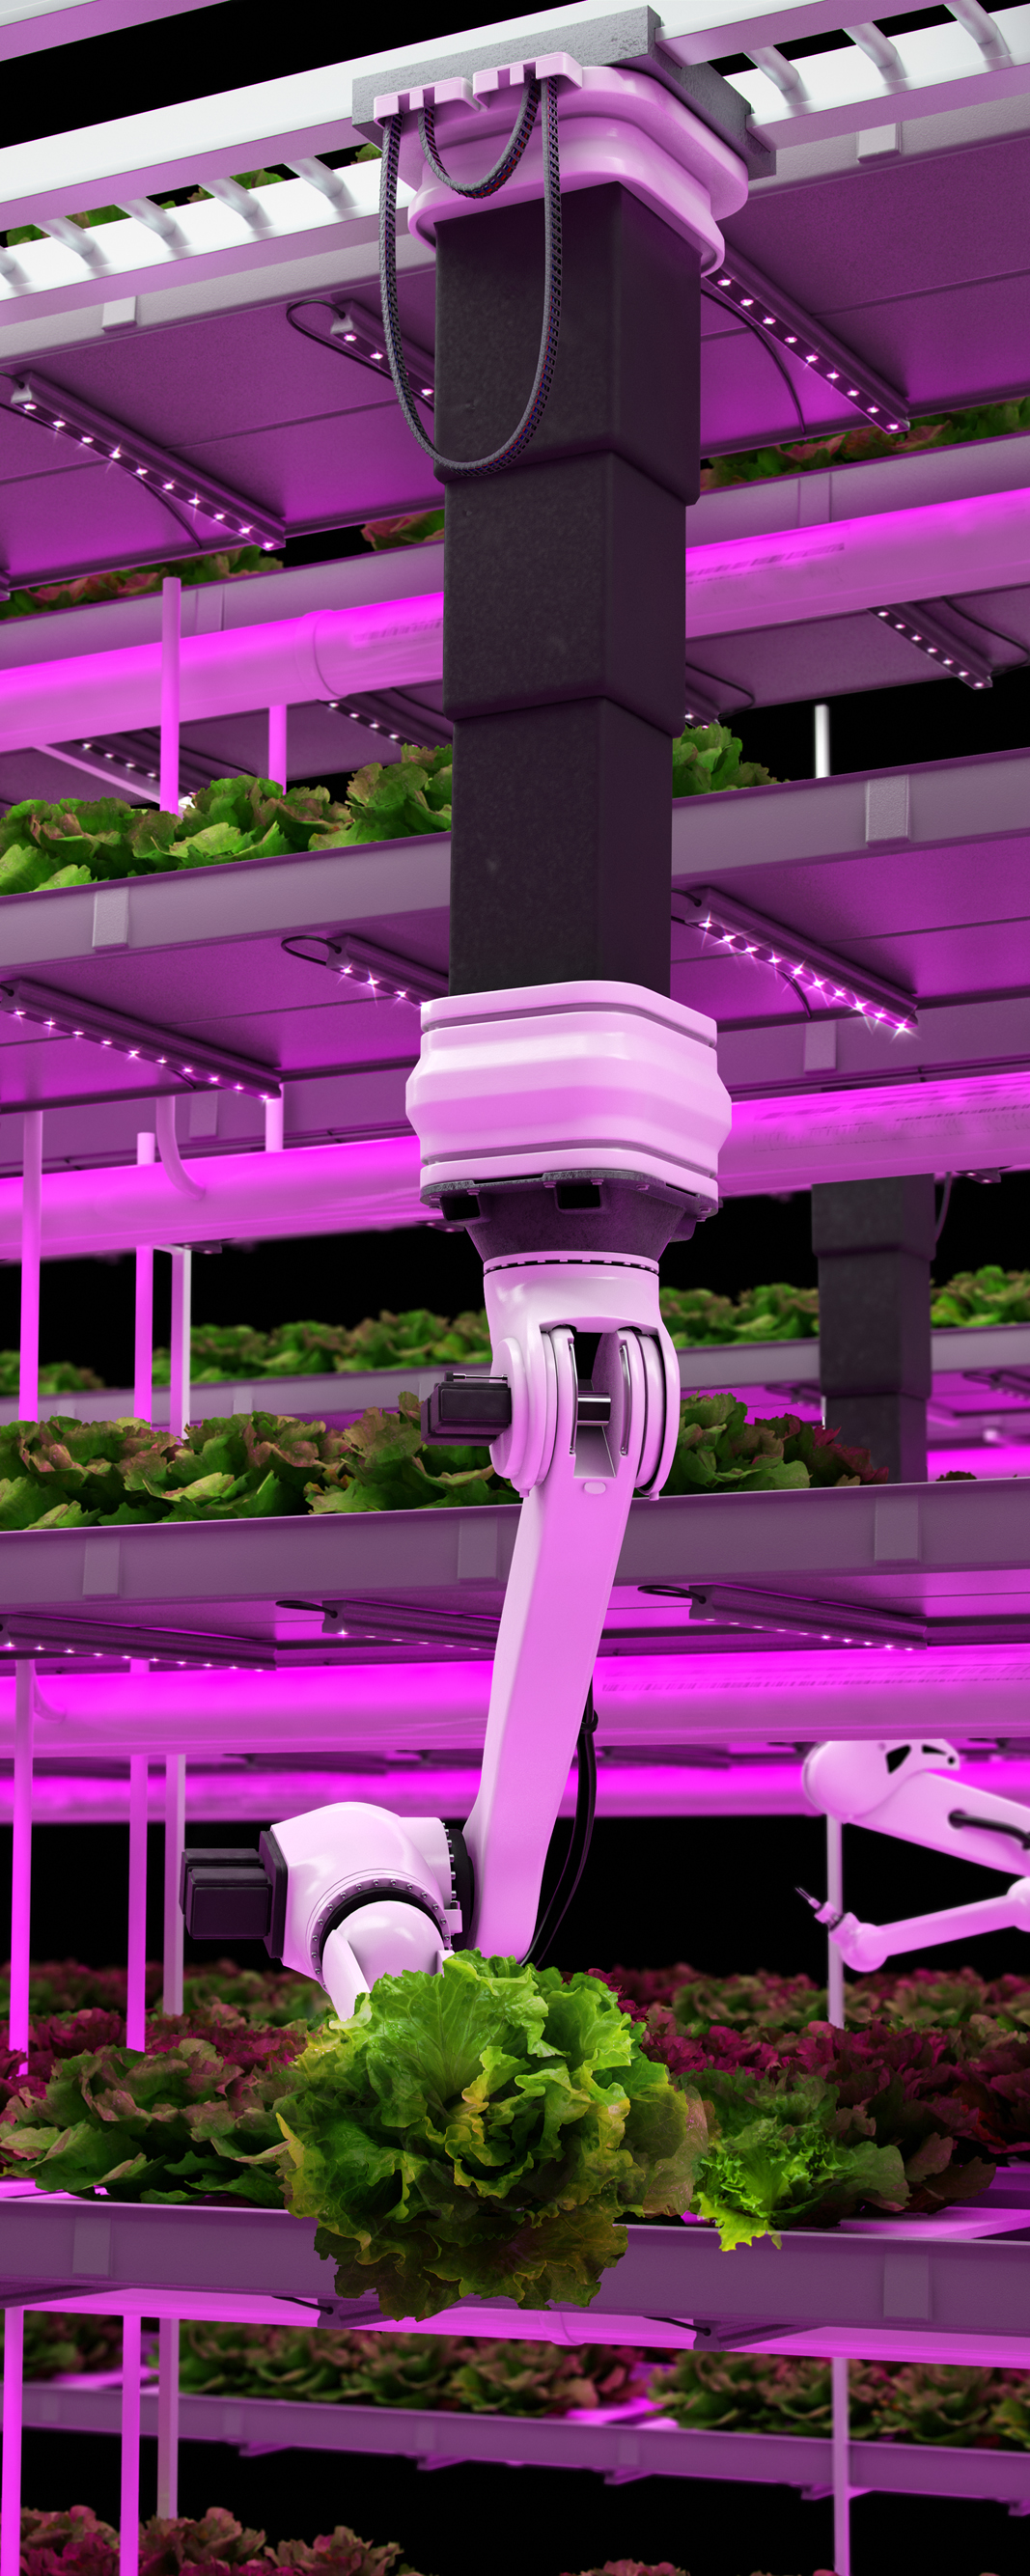 Vertical Farming.jpg